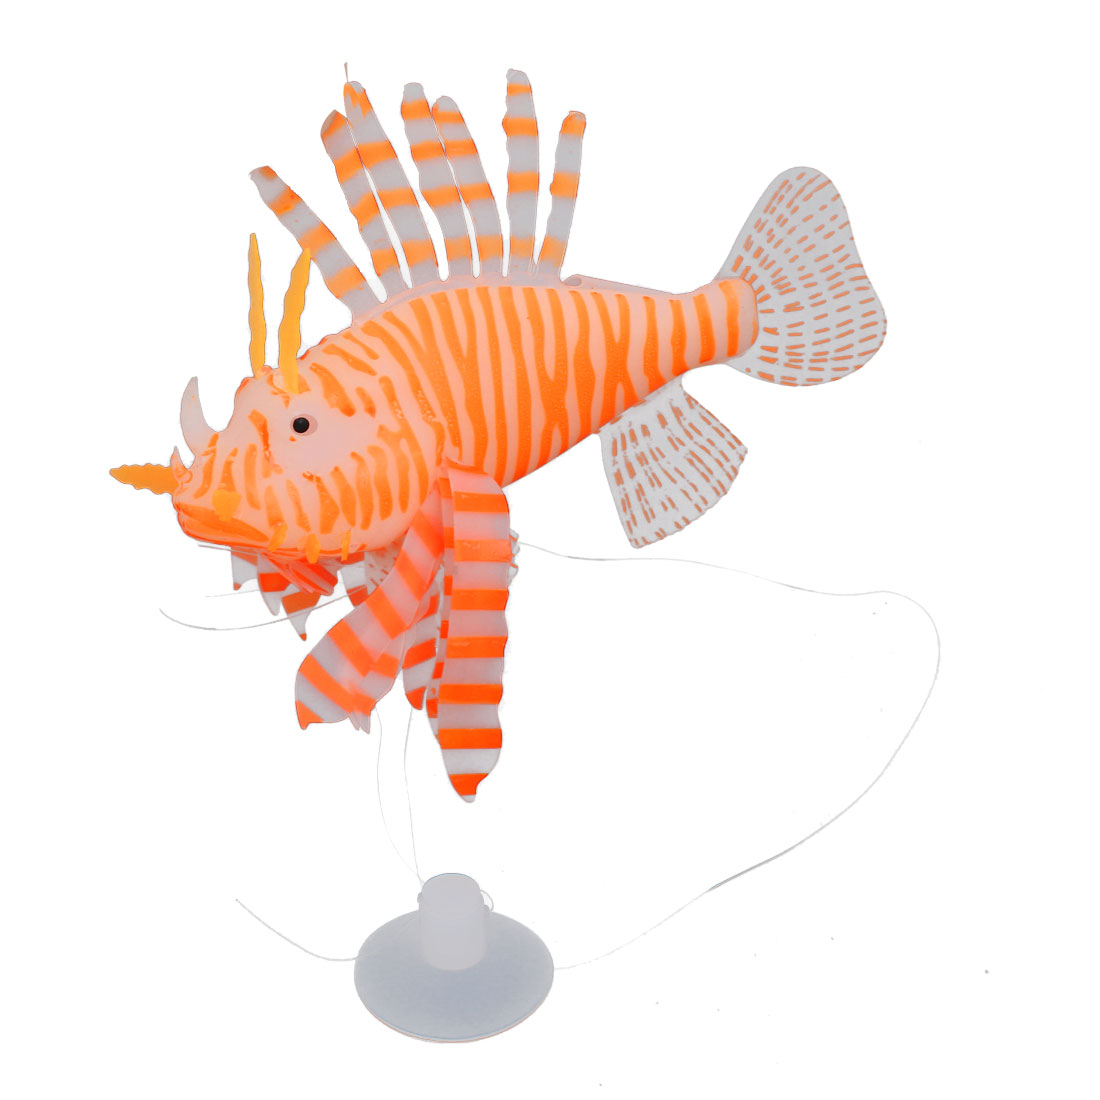 Orange Simulated Artificial Silicone Lionfish Ornament for Aquarium